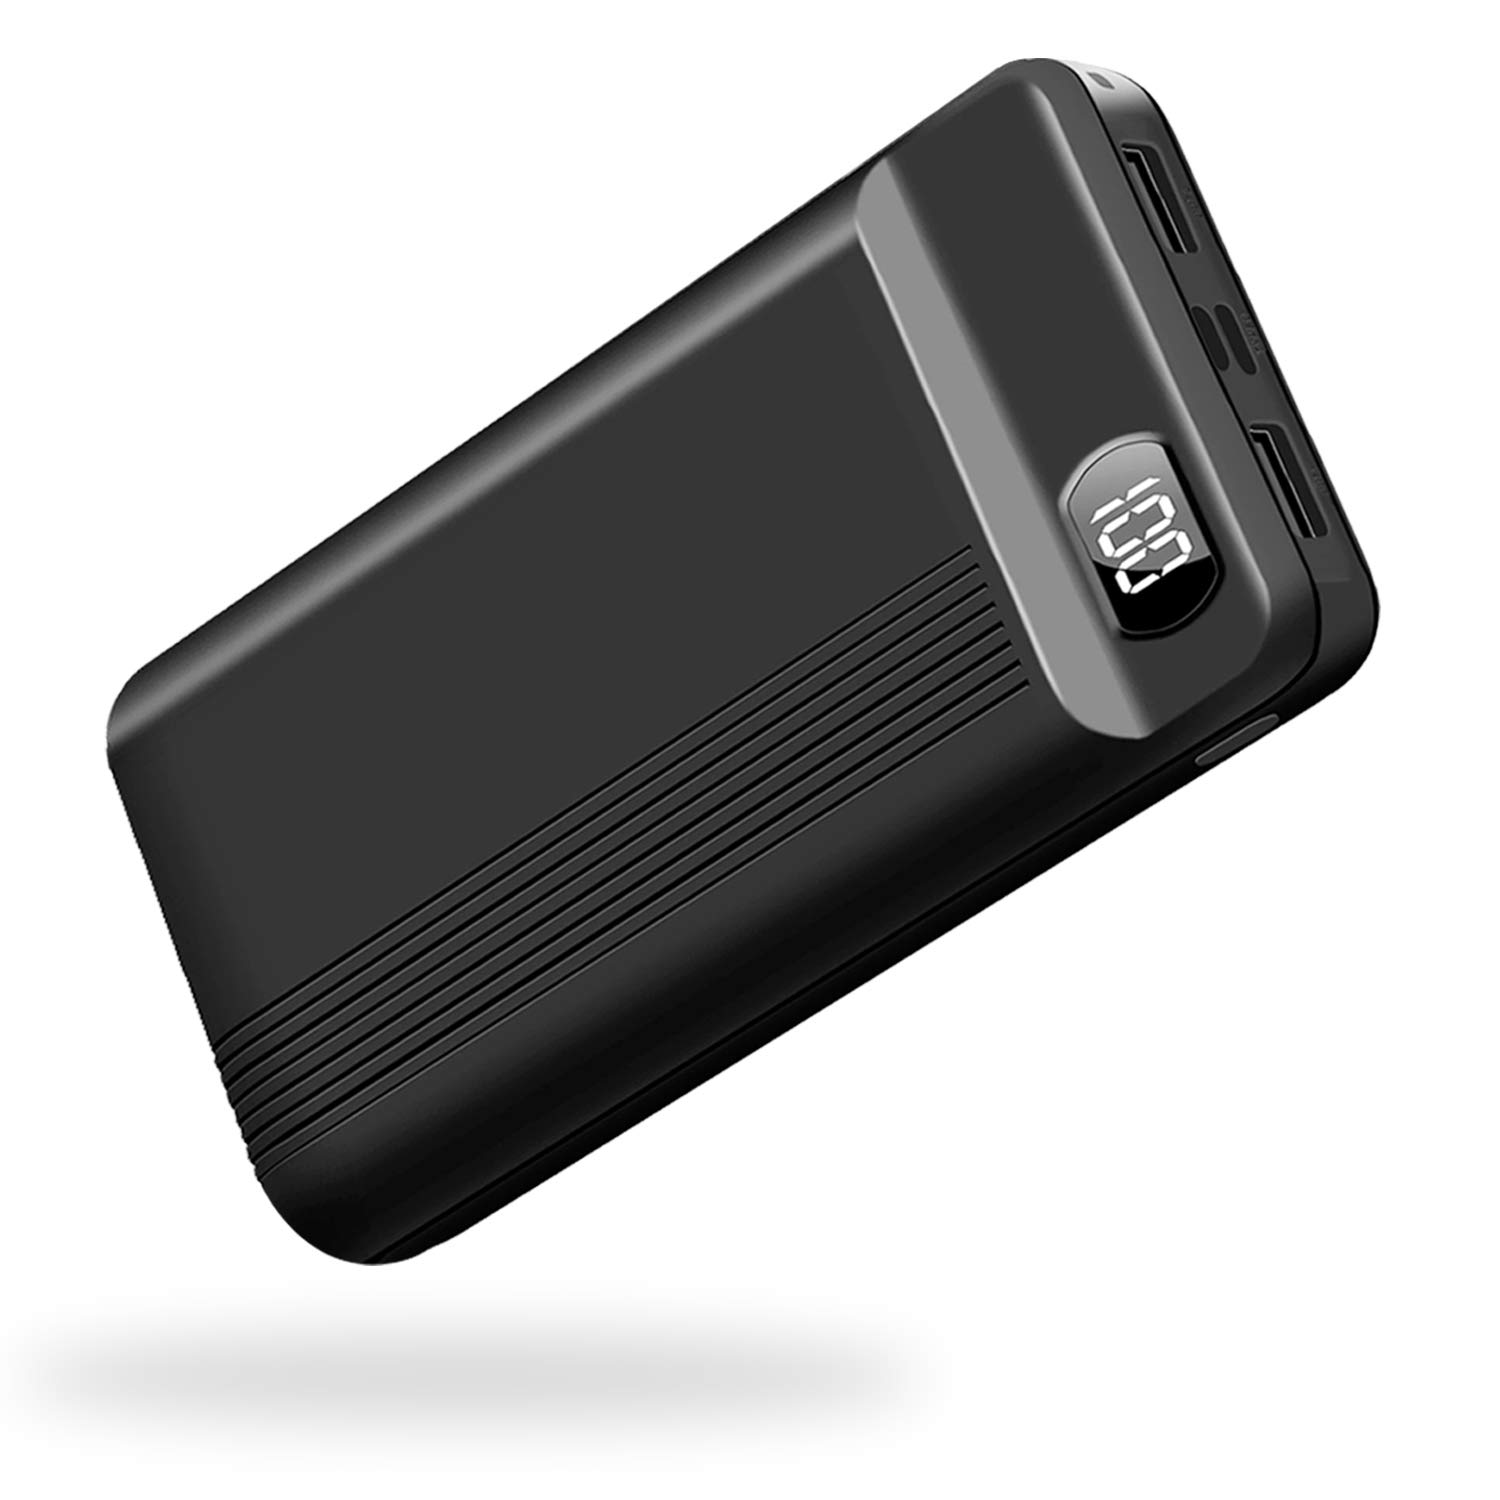 Power Bank Portable Charger 26800mAh Huge Capacity External Battery with Dual Input Port, LCD Digital Display,Smaller and Lightweight Backup Battery Compatible with Android Phone and Other Devices